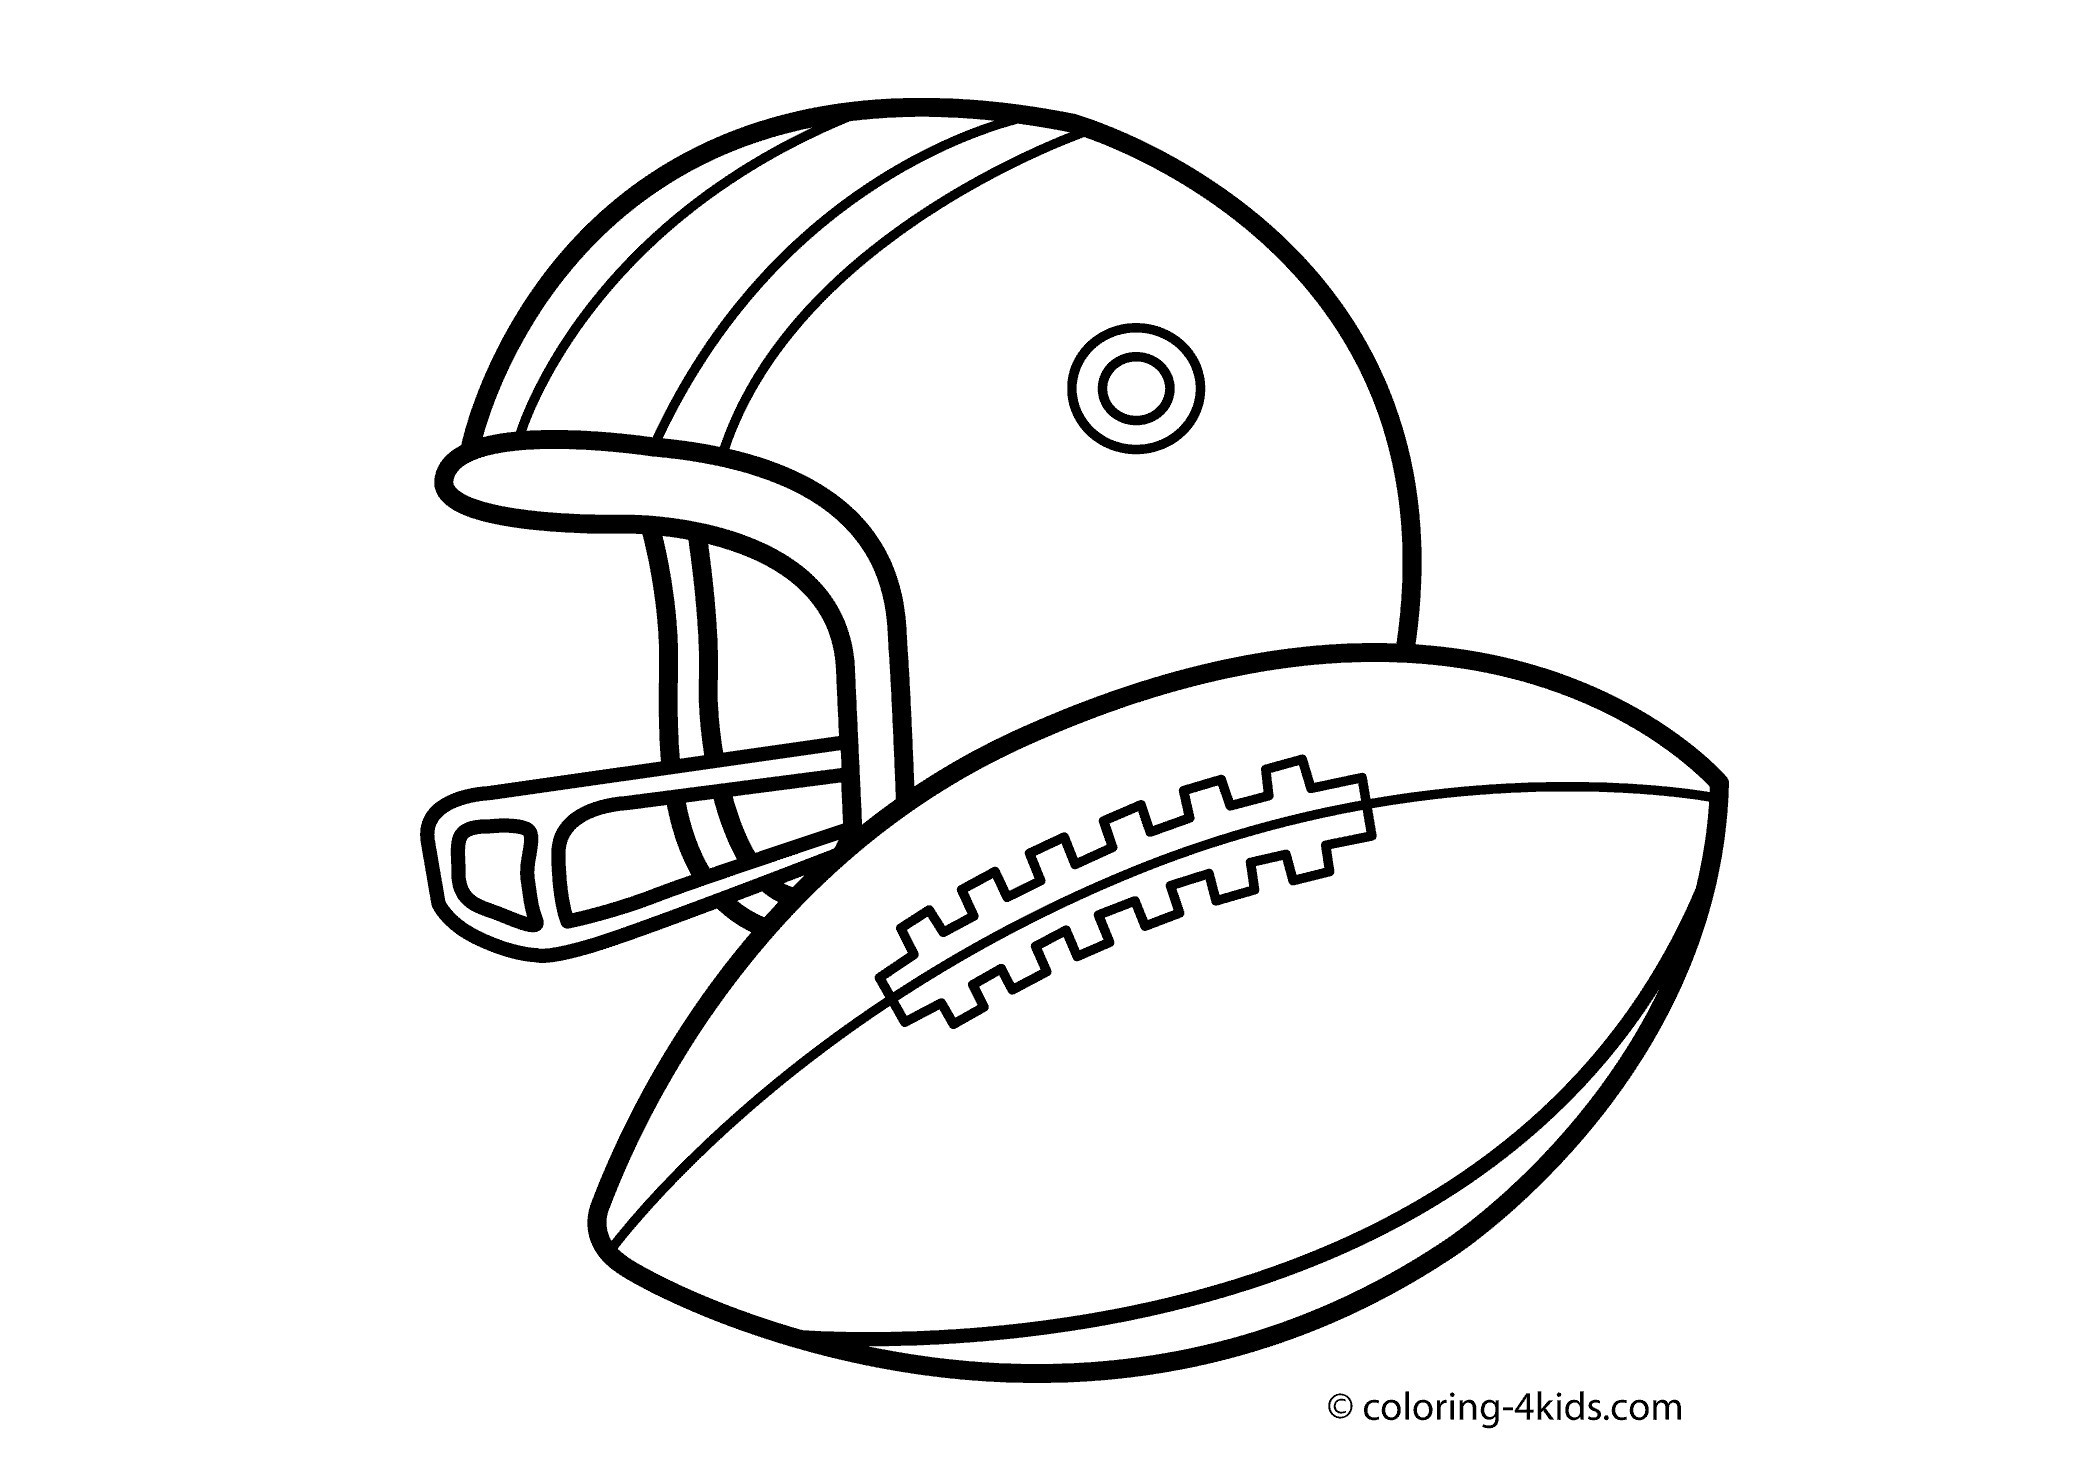 Free Printable Sports Coloring Pages At Getdrawings